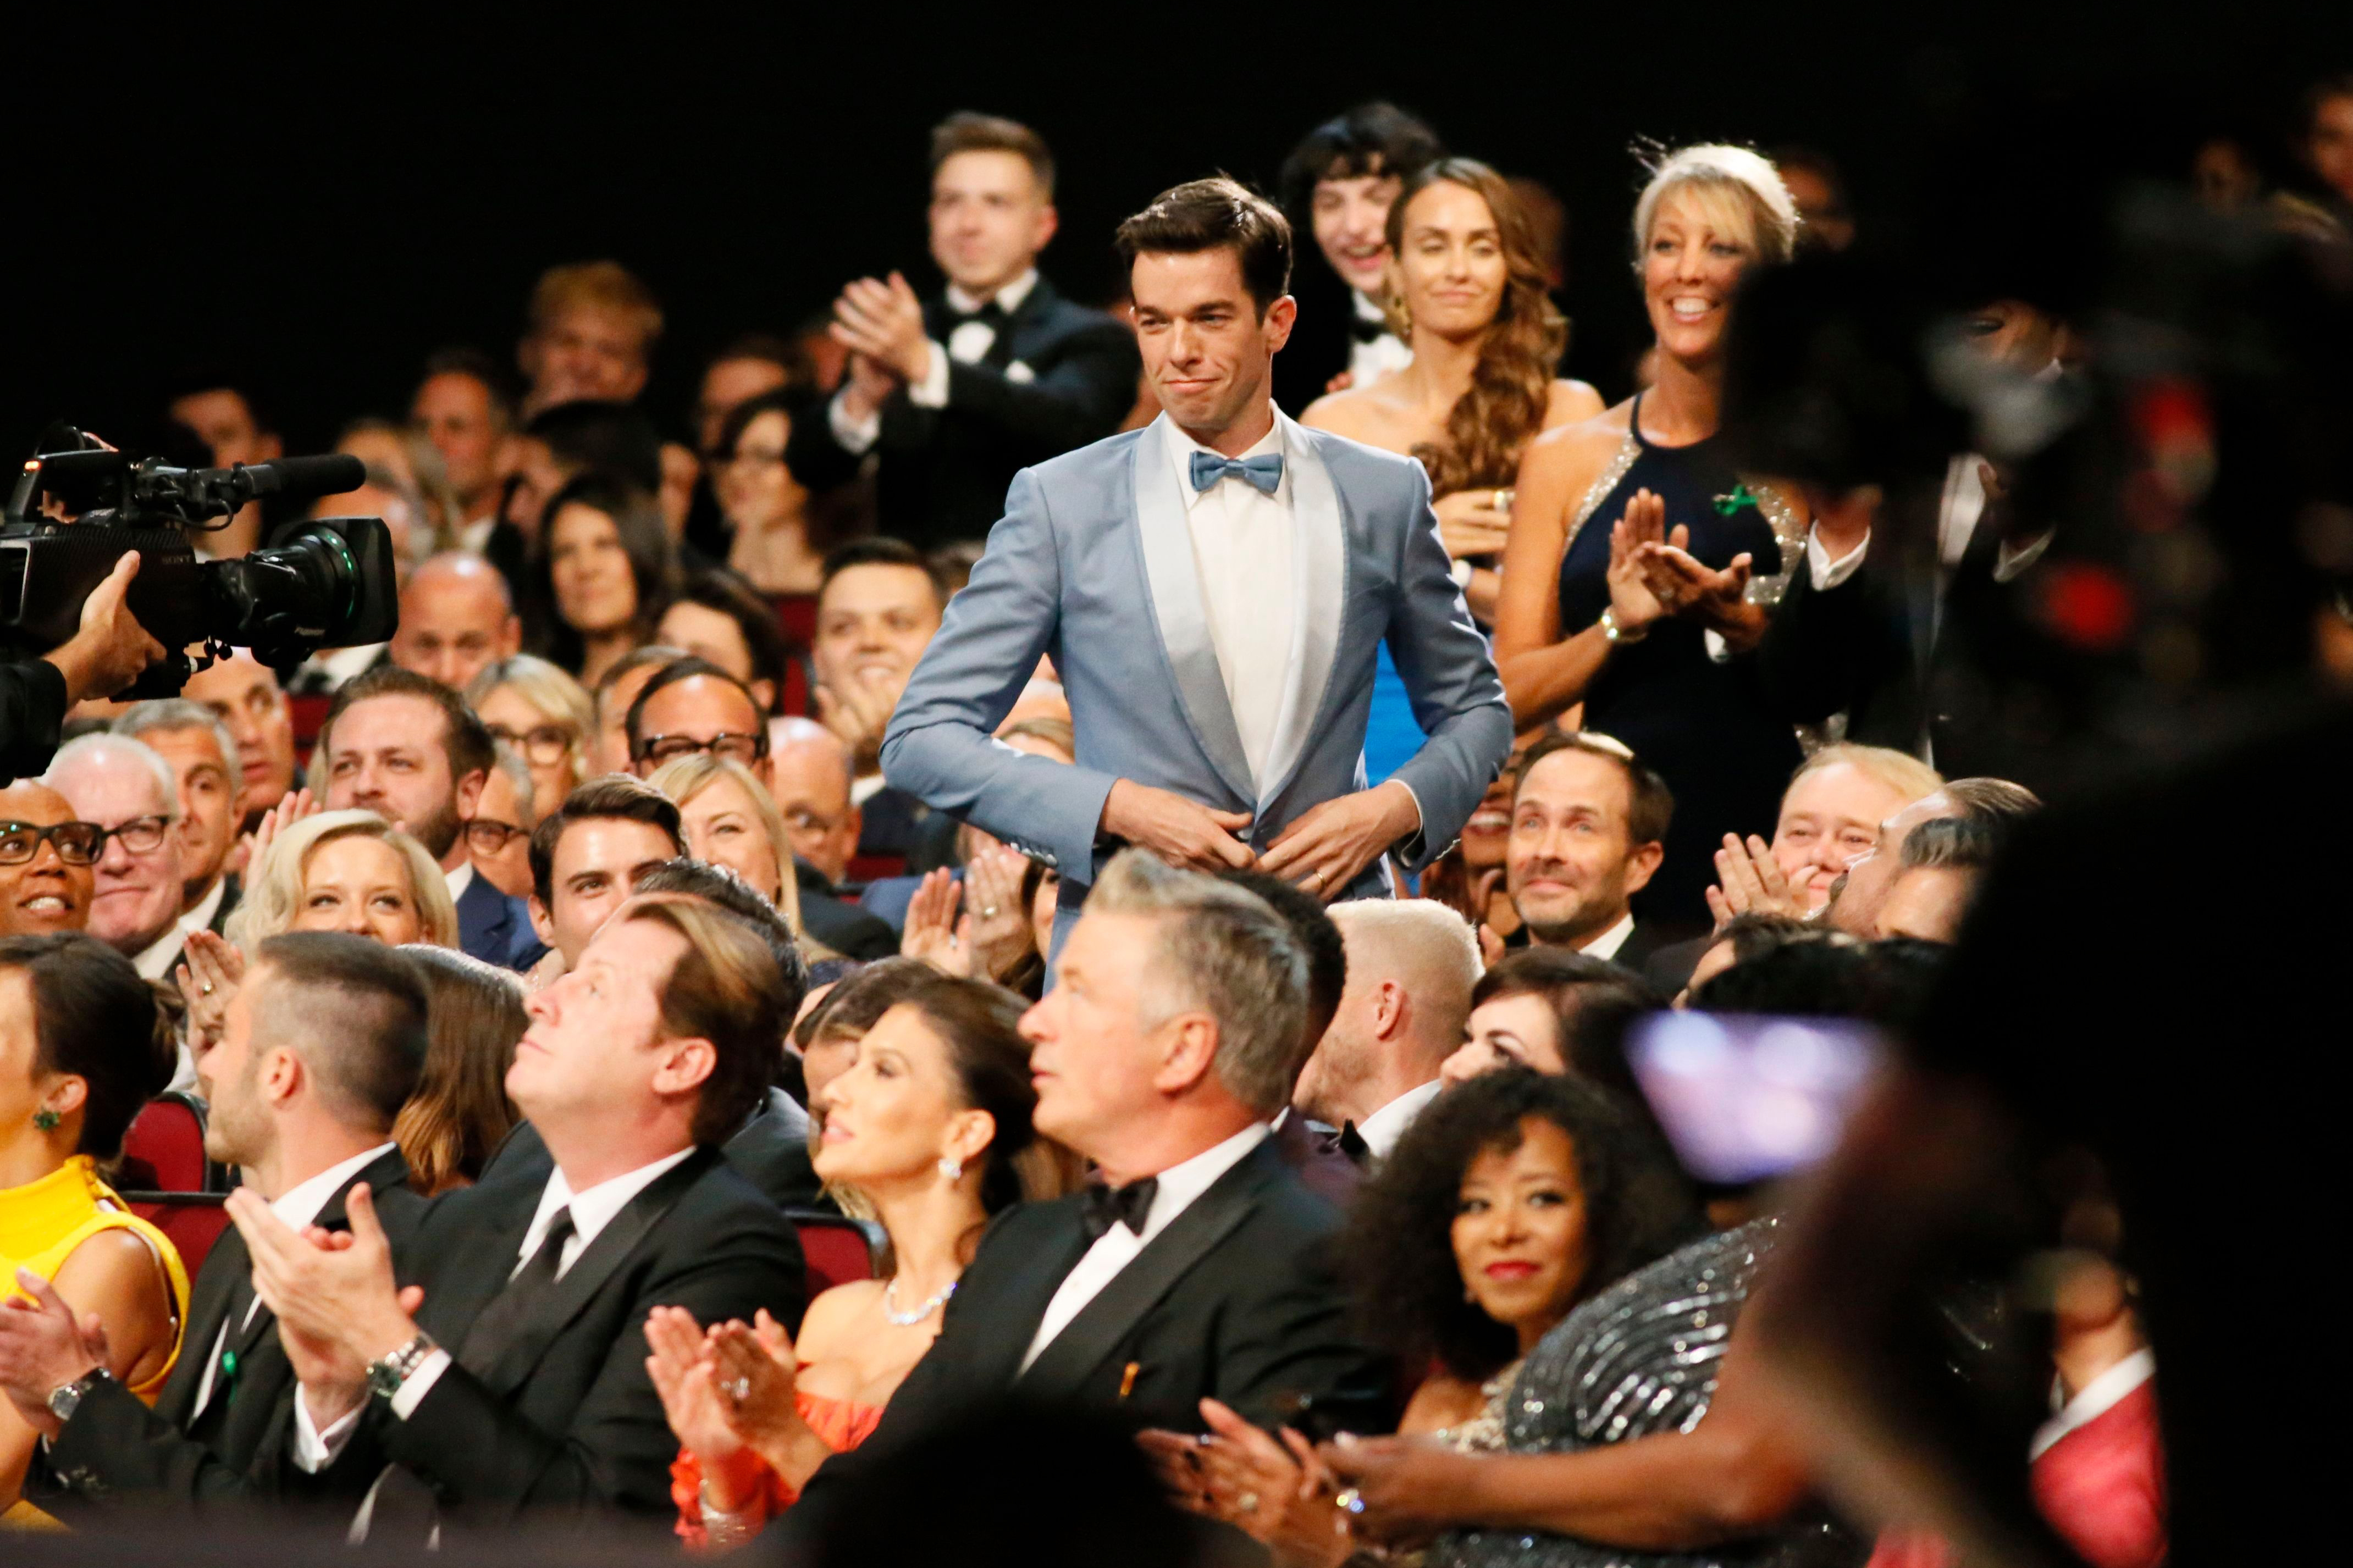 John Mulaney stands up to accept the award for outstanding writing for a variety special70th Primetime Emmy Awards - Audience, Los Angeles, USA - 17 Sep 2018